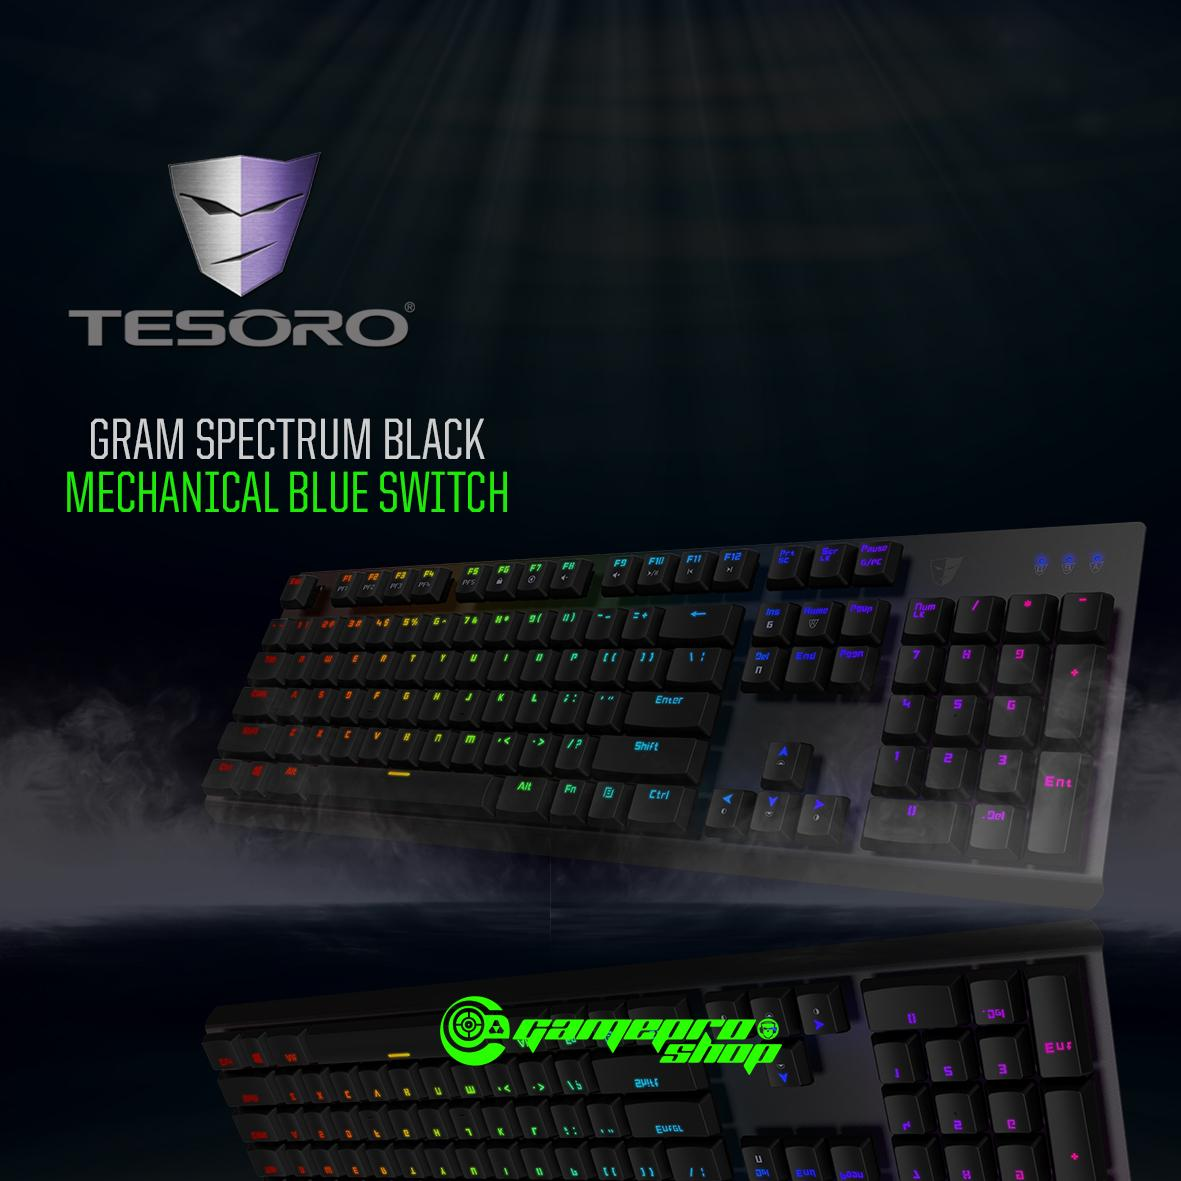 TESORO GRAM SPECTRUM BLACK MECHANICAL BLUE SWITCH Singapore